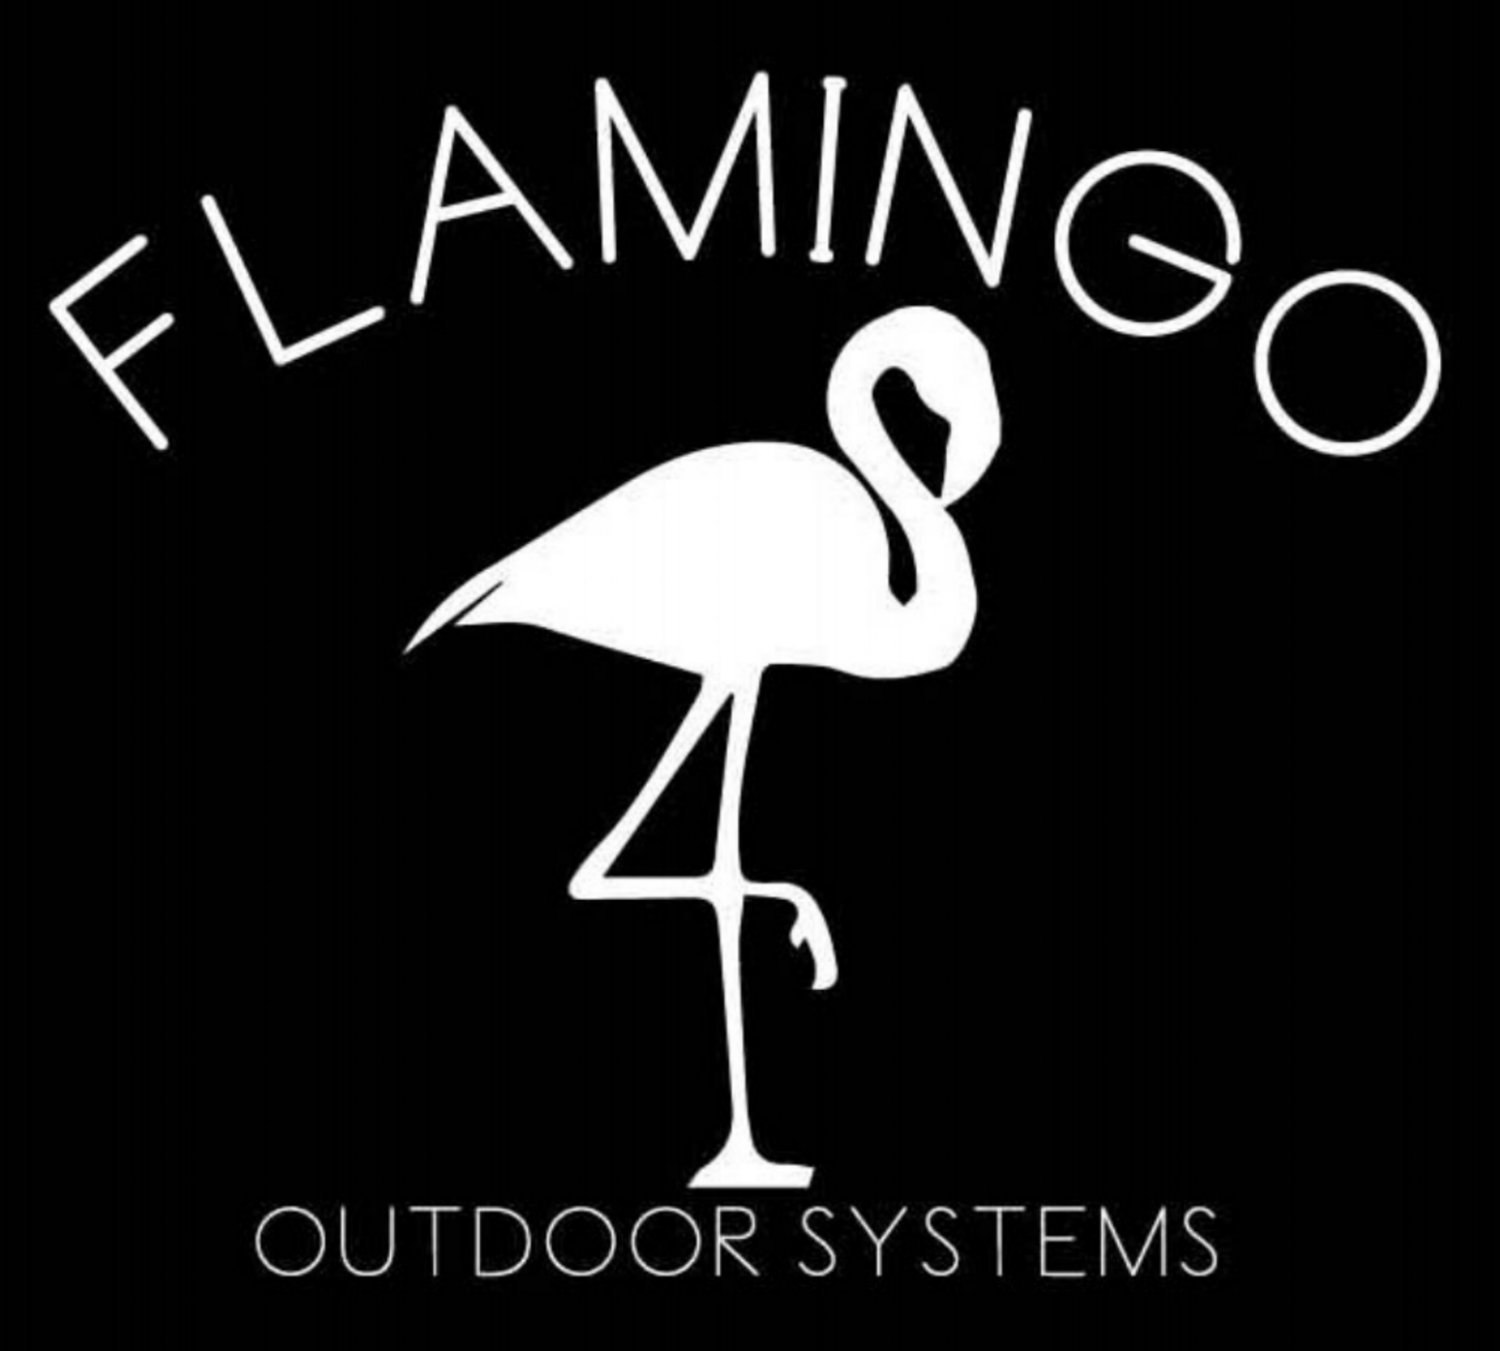 Flamingo Outdoor Systems